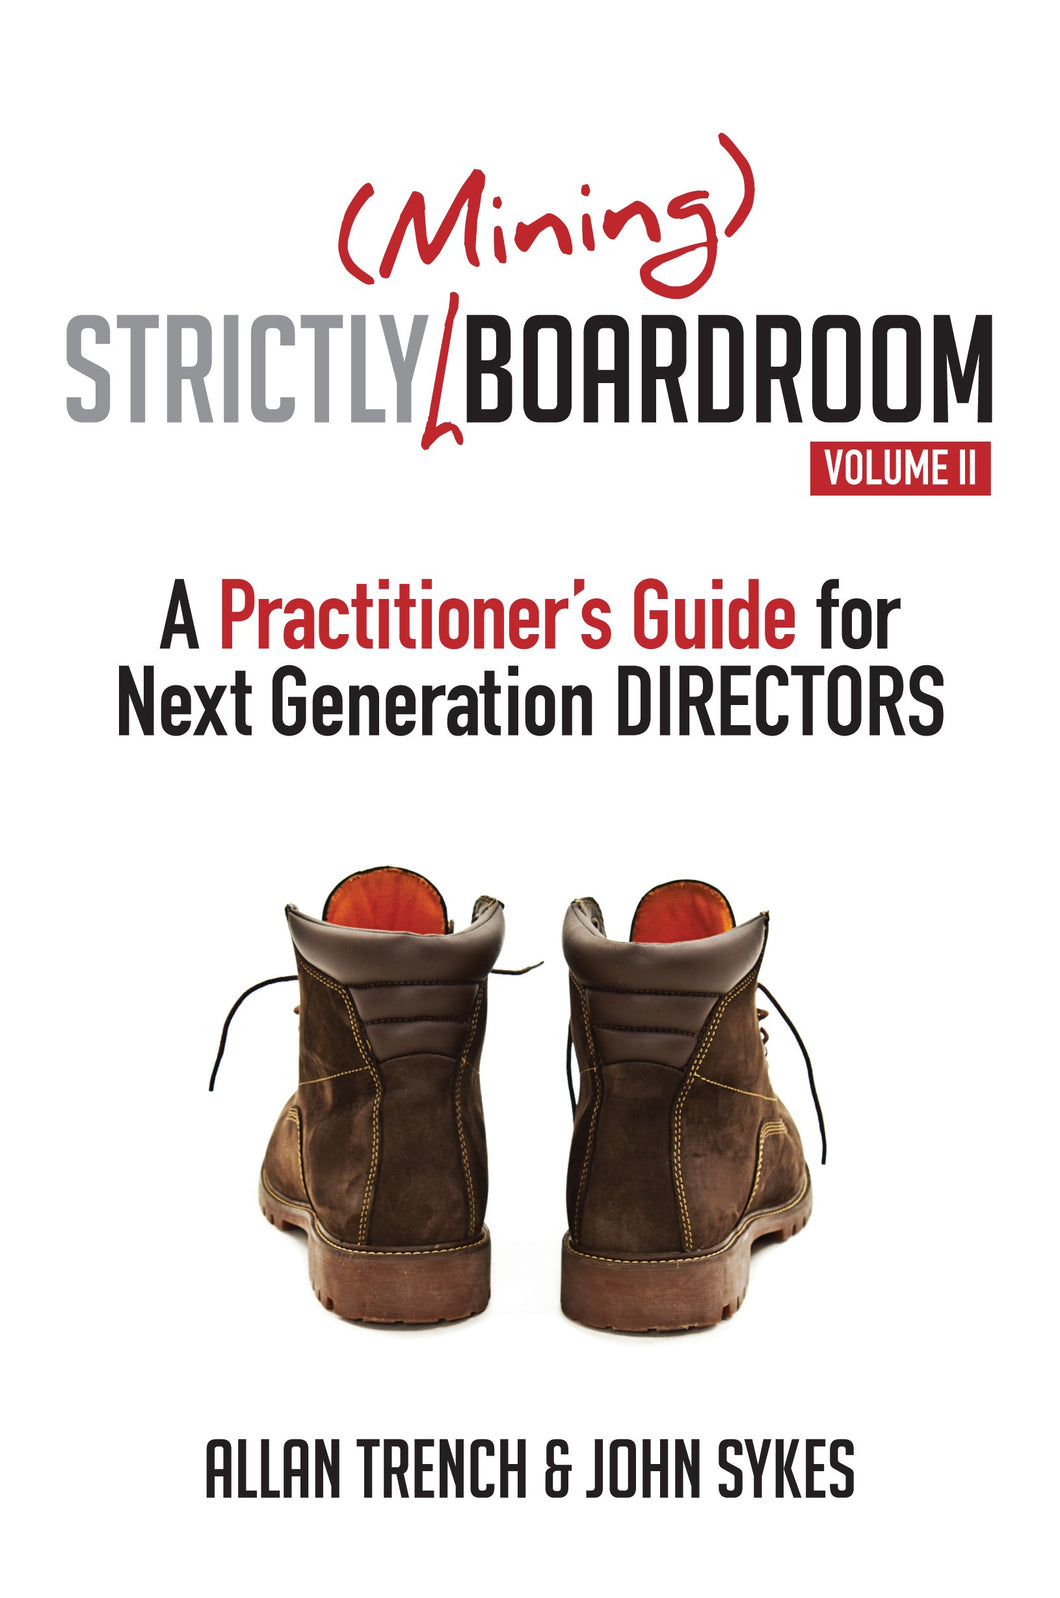 Strictly (Mining) Boardroom II <br><i><small>by Dr Allan Trench & John Sykes</i></small>